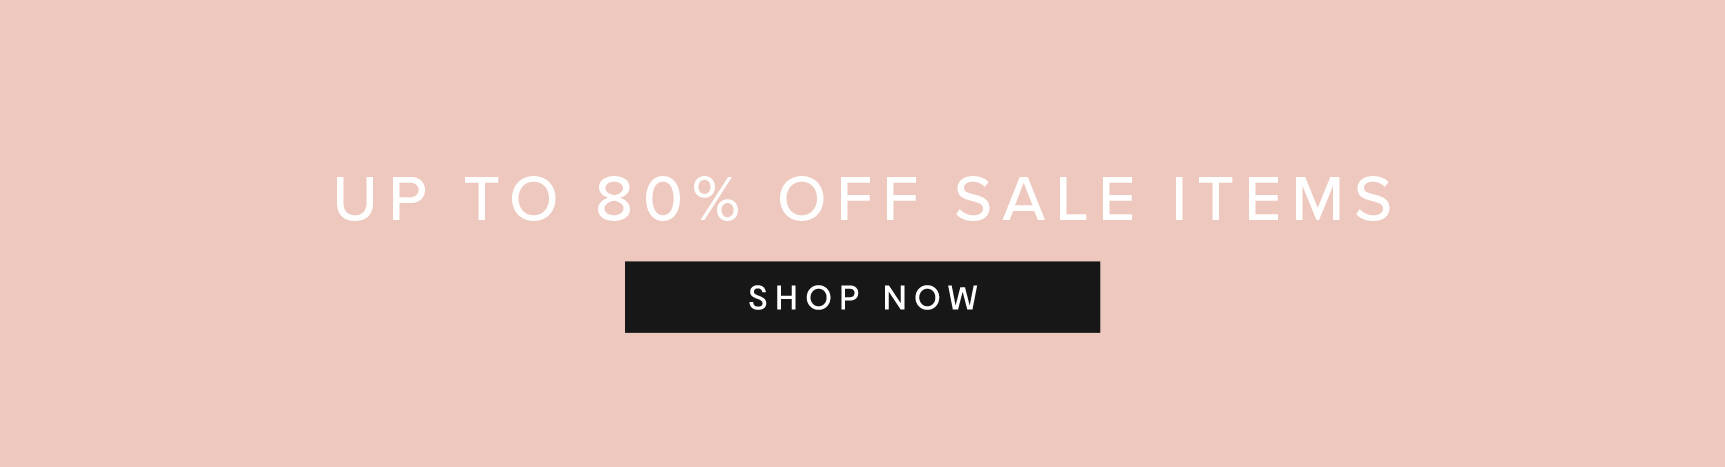 Up to 80% Off Sale Items